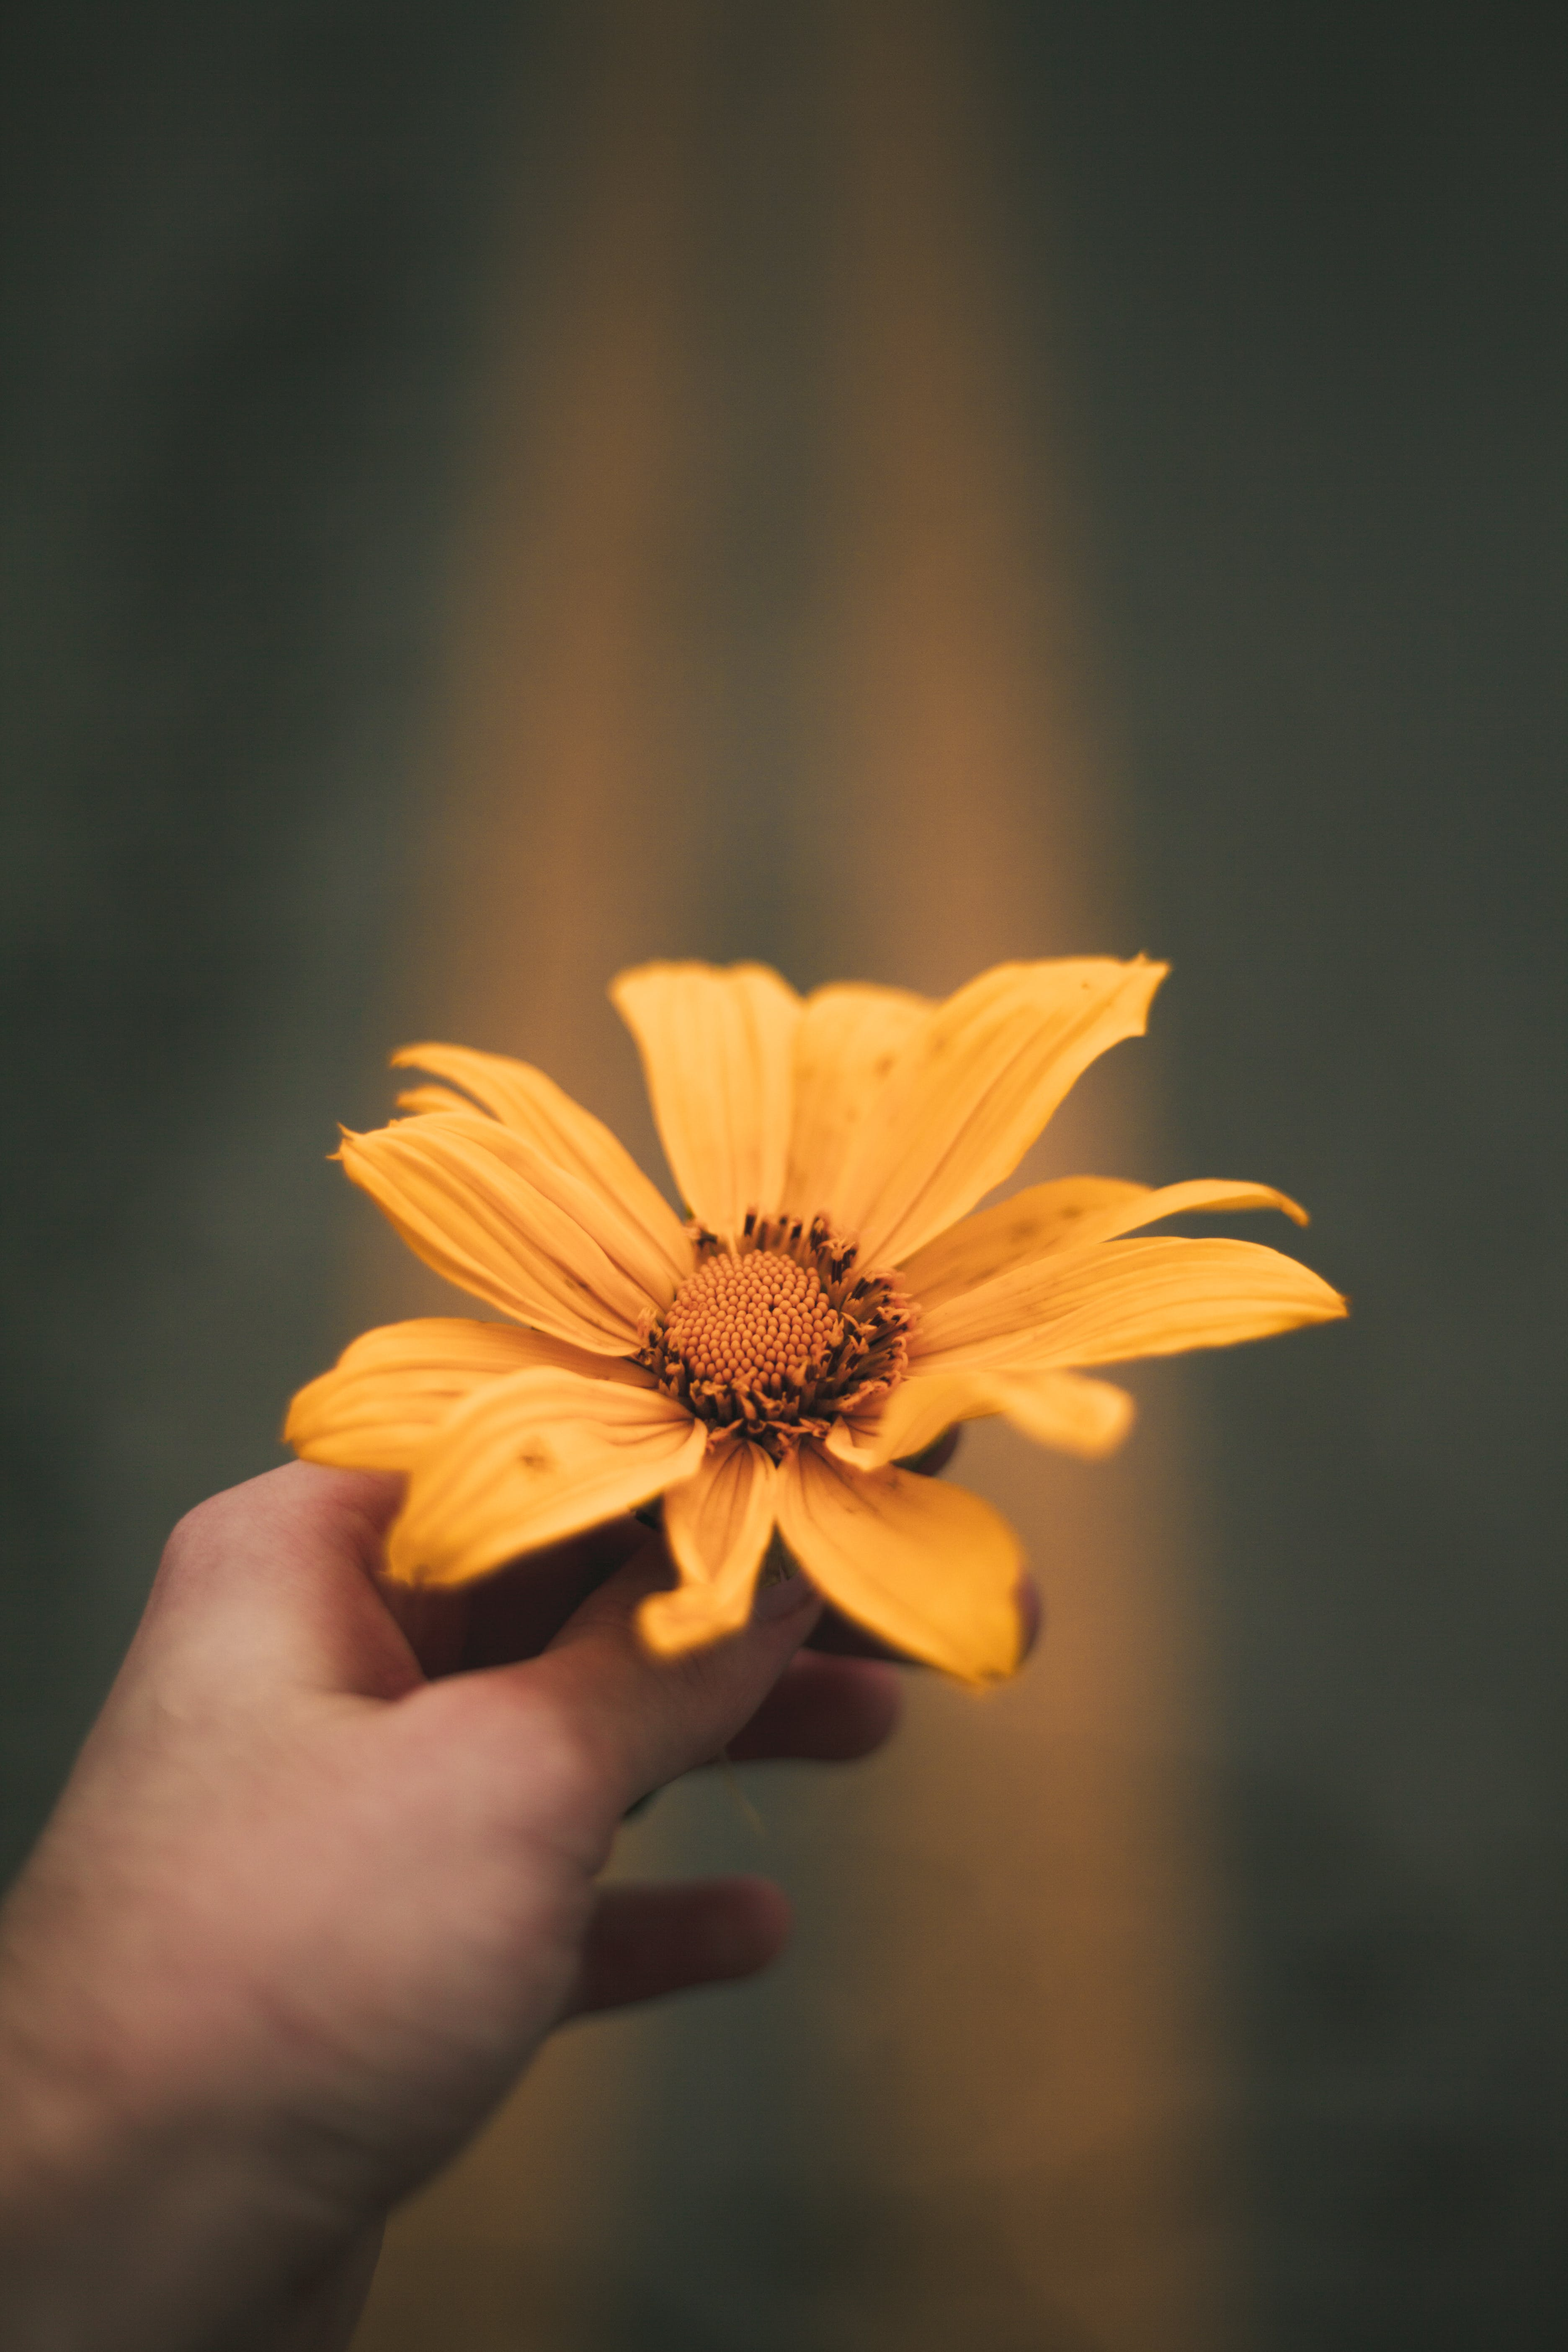 Person Holding Sunflower Flower